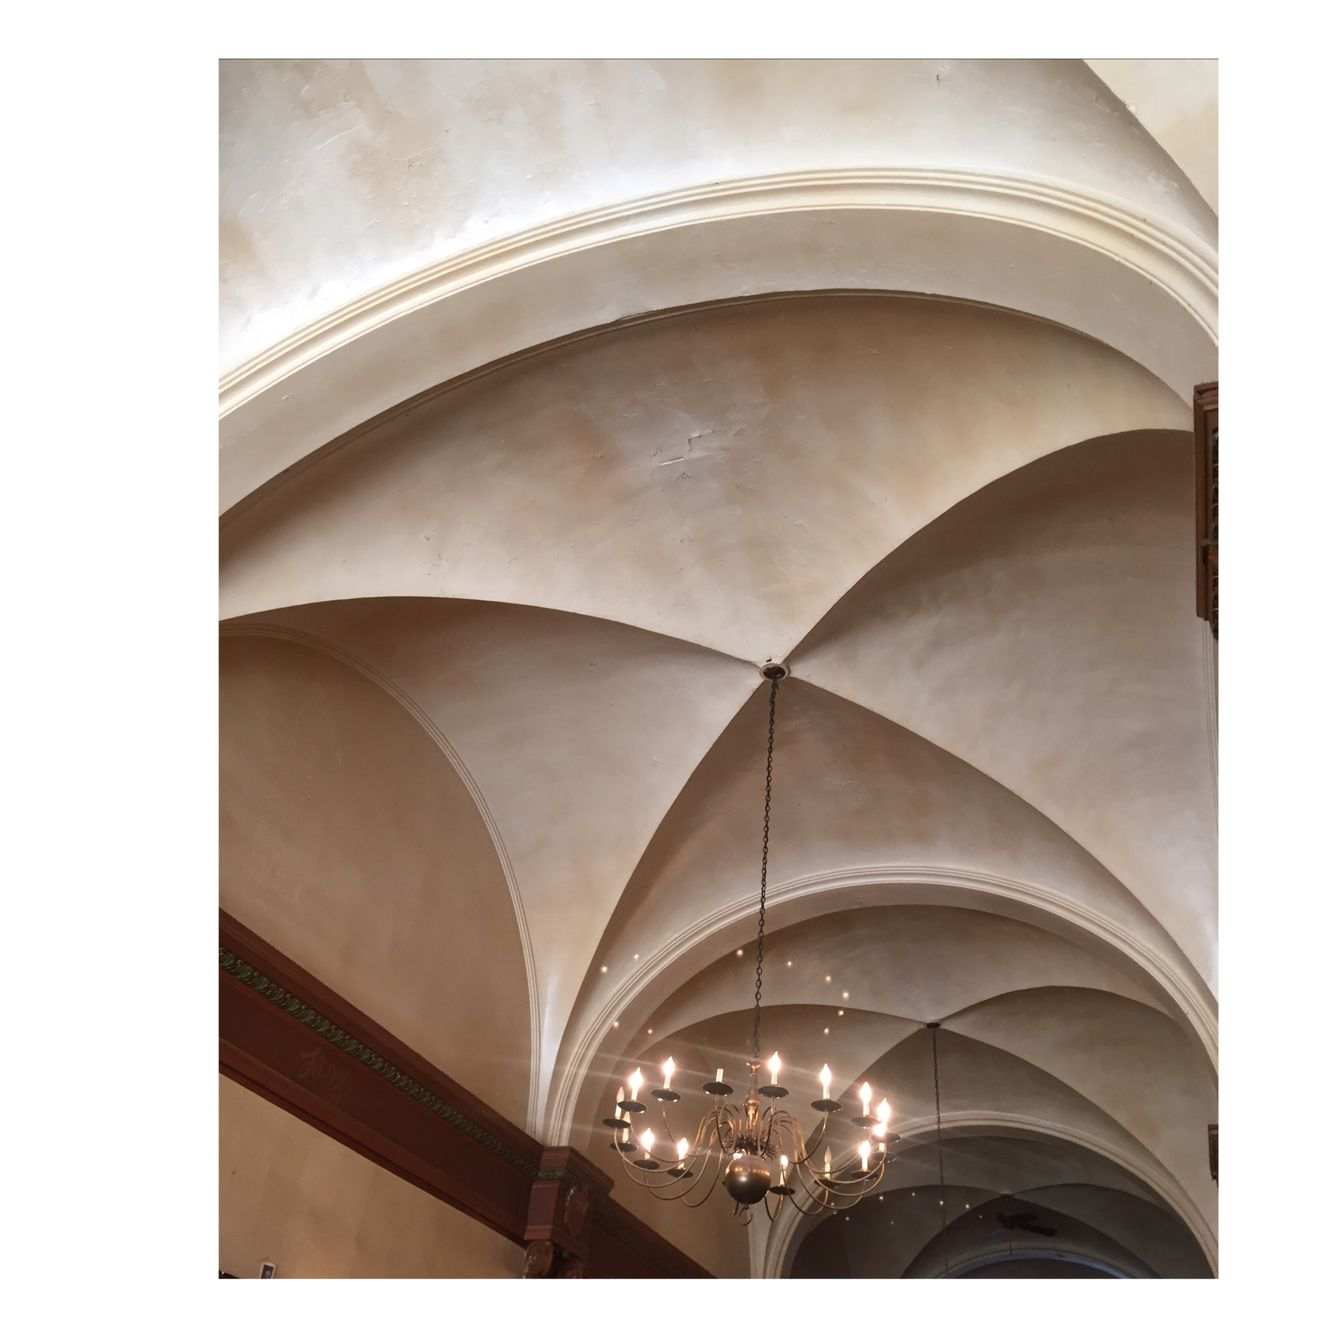 Awesome #architecture At #Grandtrunk #Restaurant #Brunch